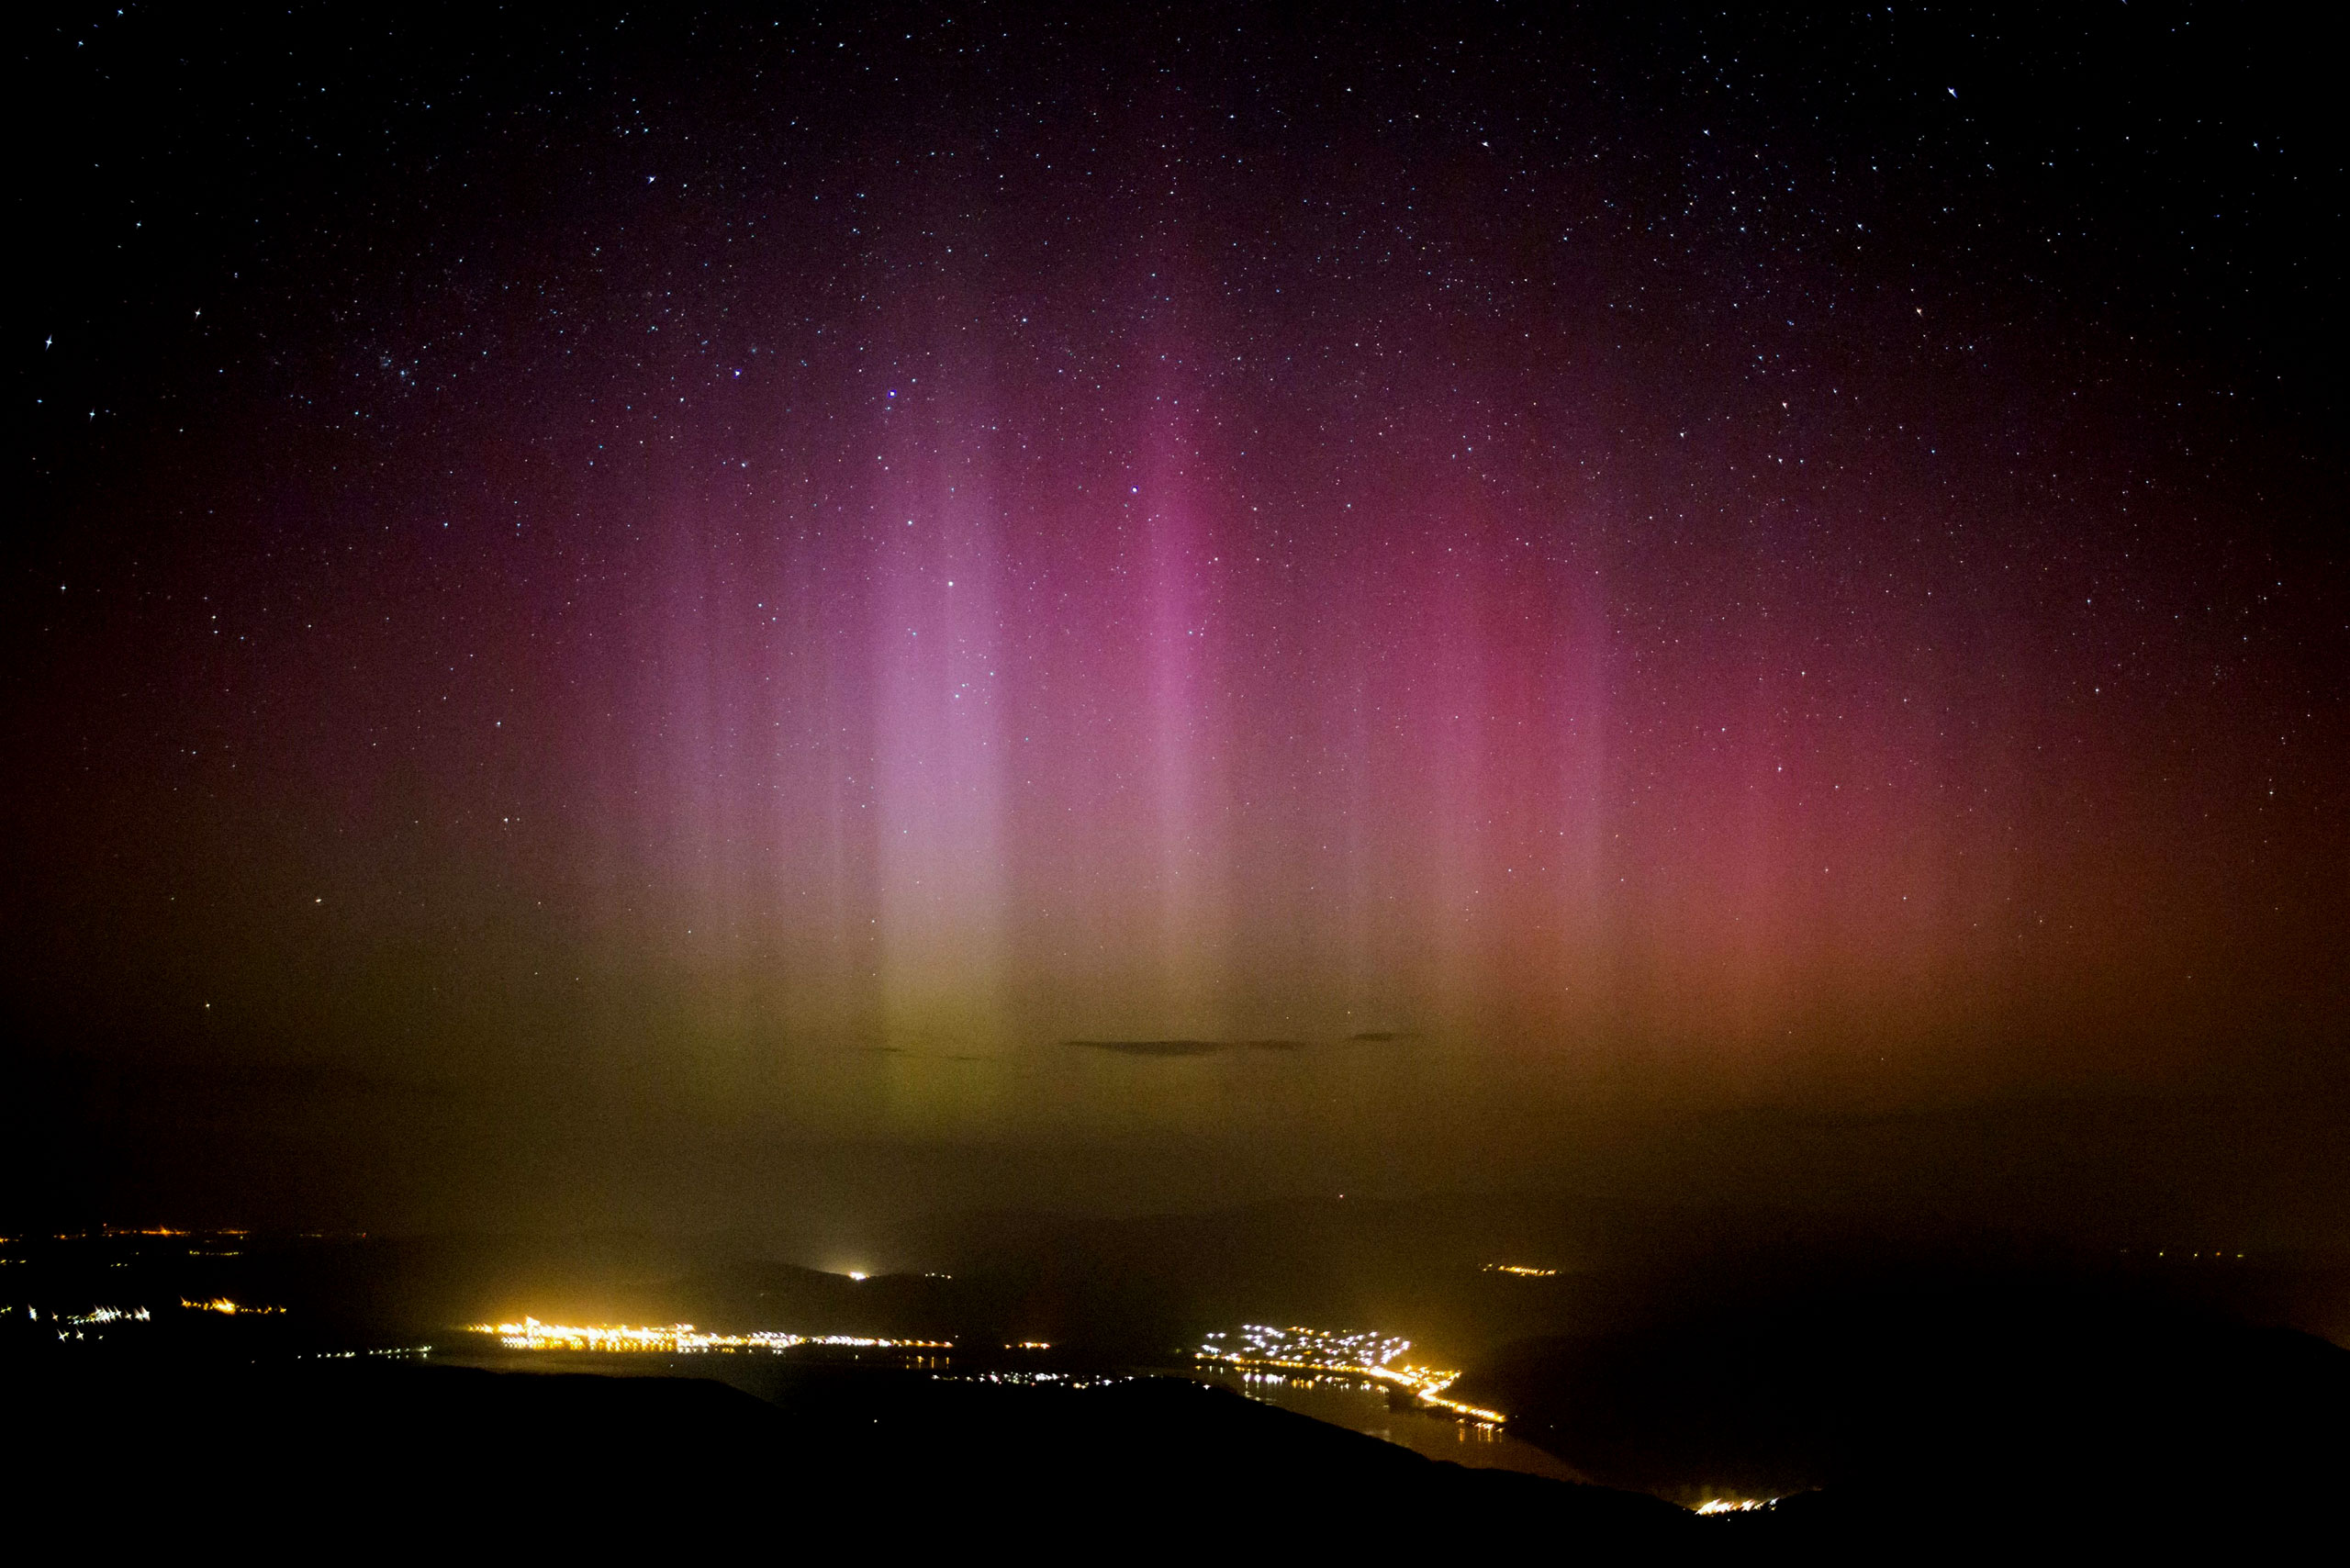 The Northern Lights (Aurora borealis) are seen on the sky above Pilisszentkereszt, Hungary, on March 18, 2015.